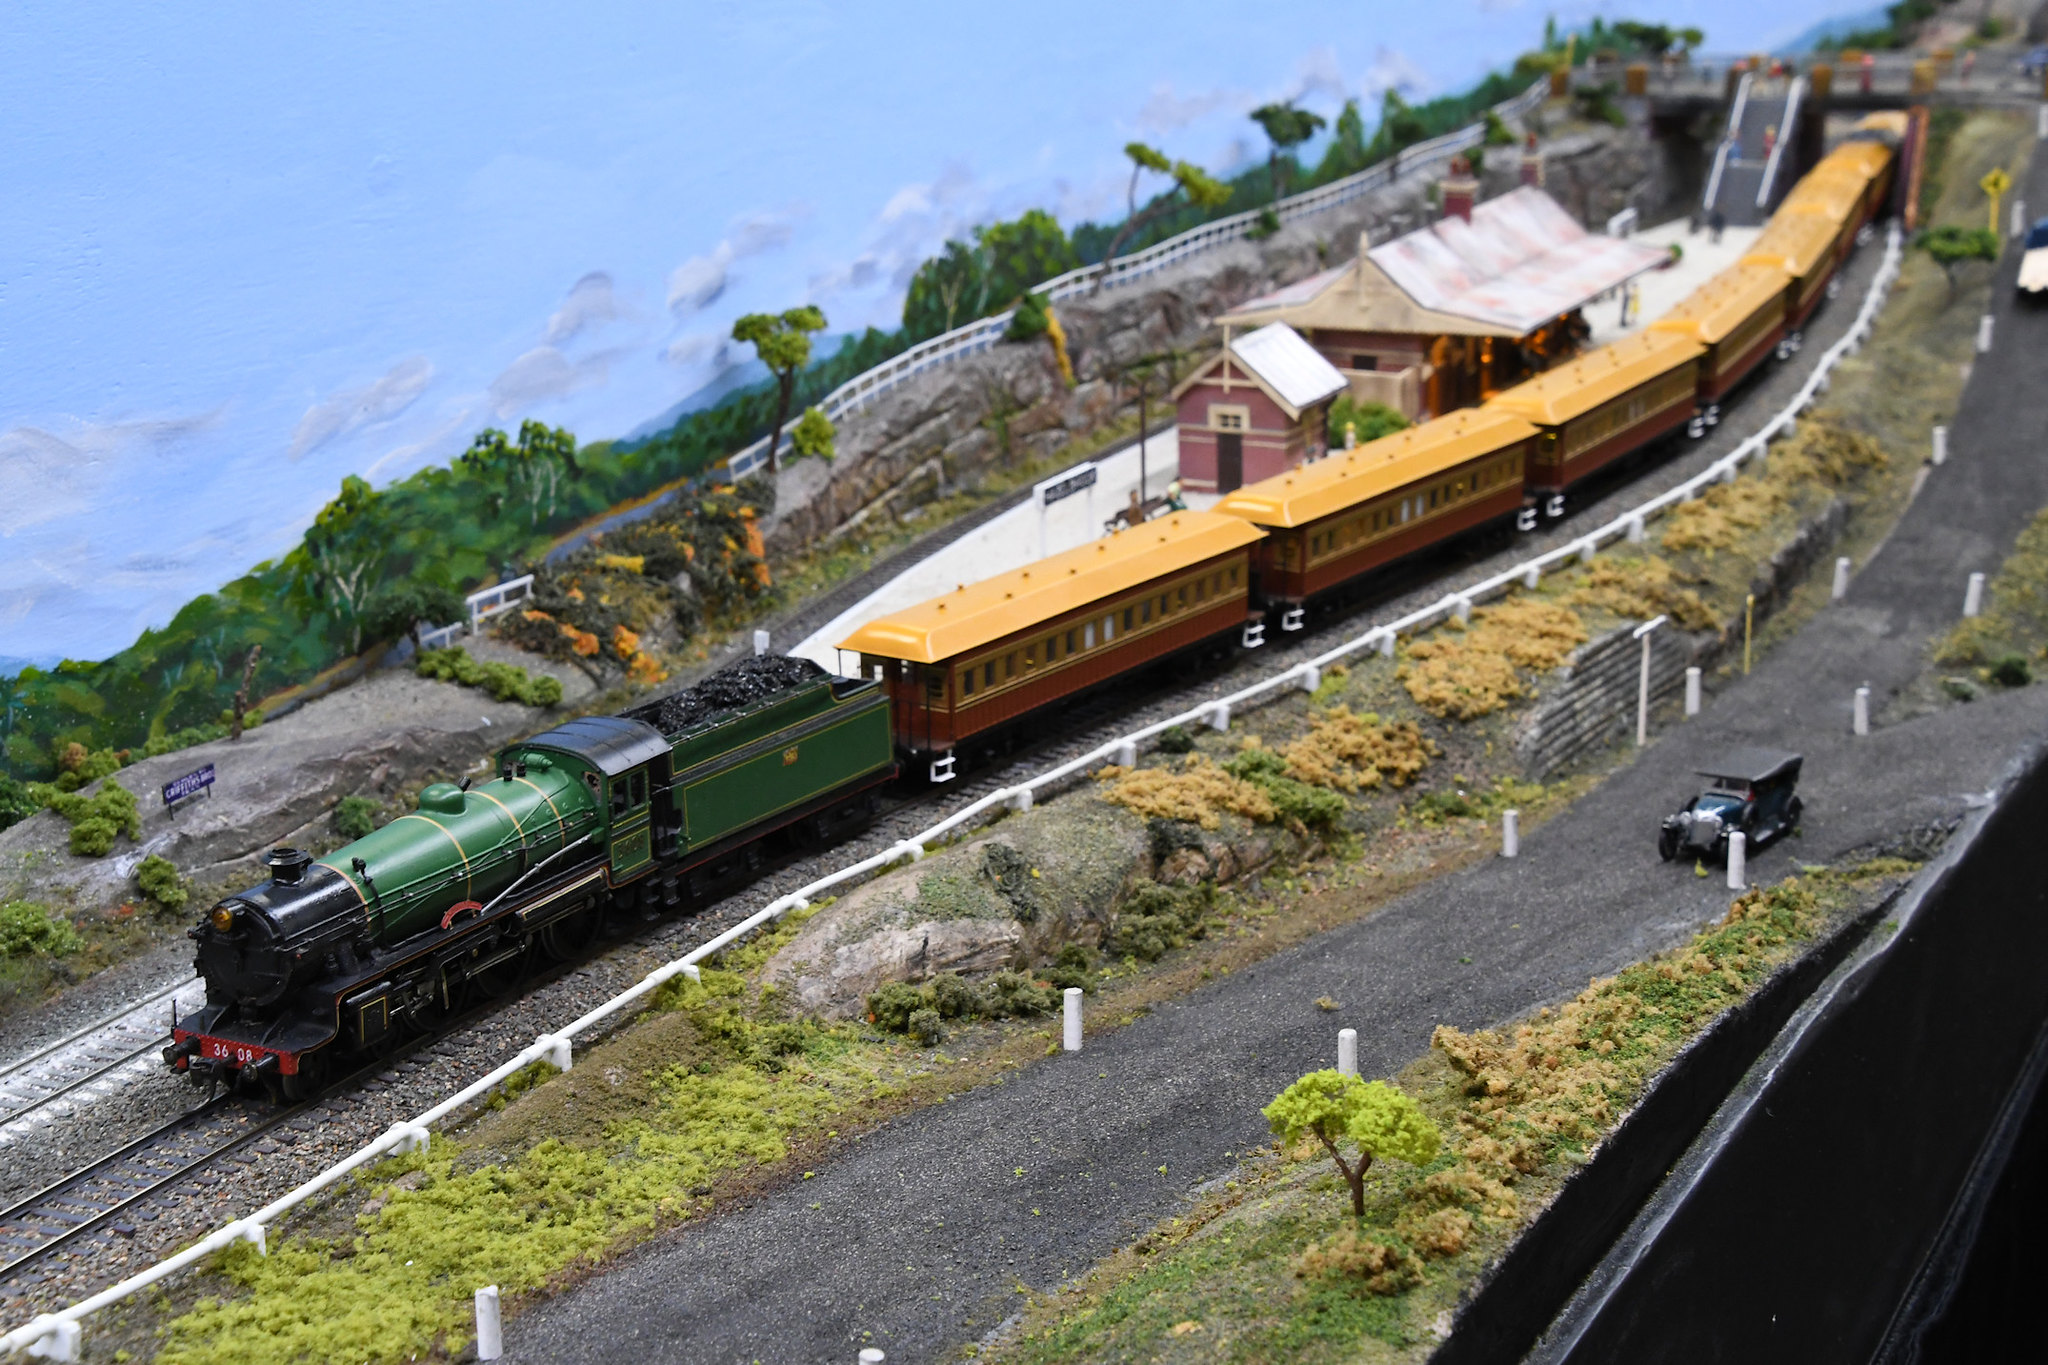 3608, Blue Mountains Layout, Epping Model Railway Exhibition, Rosehill, Sydney, NSW.